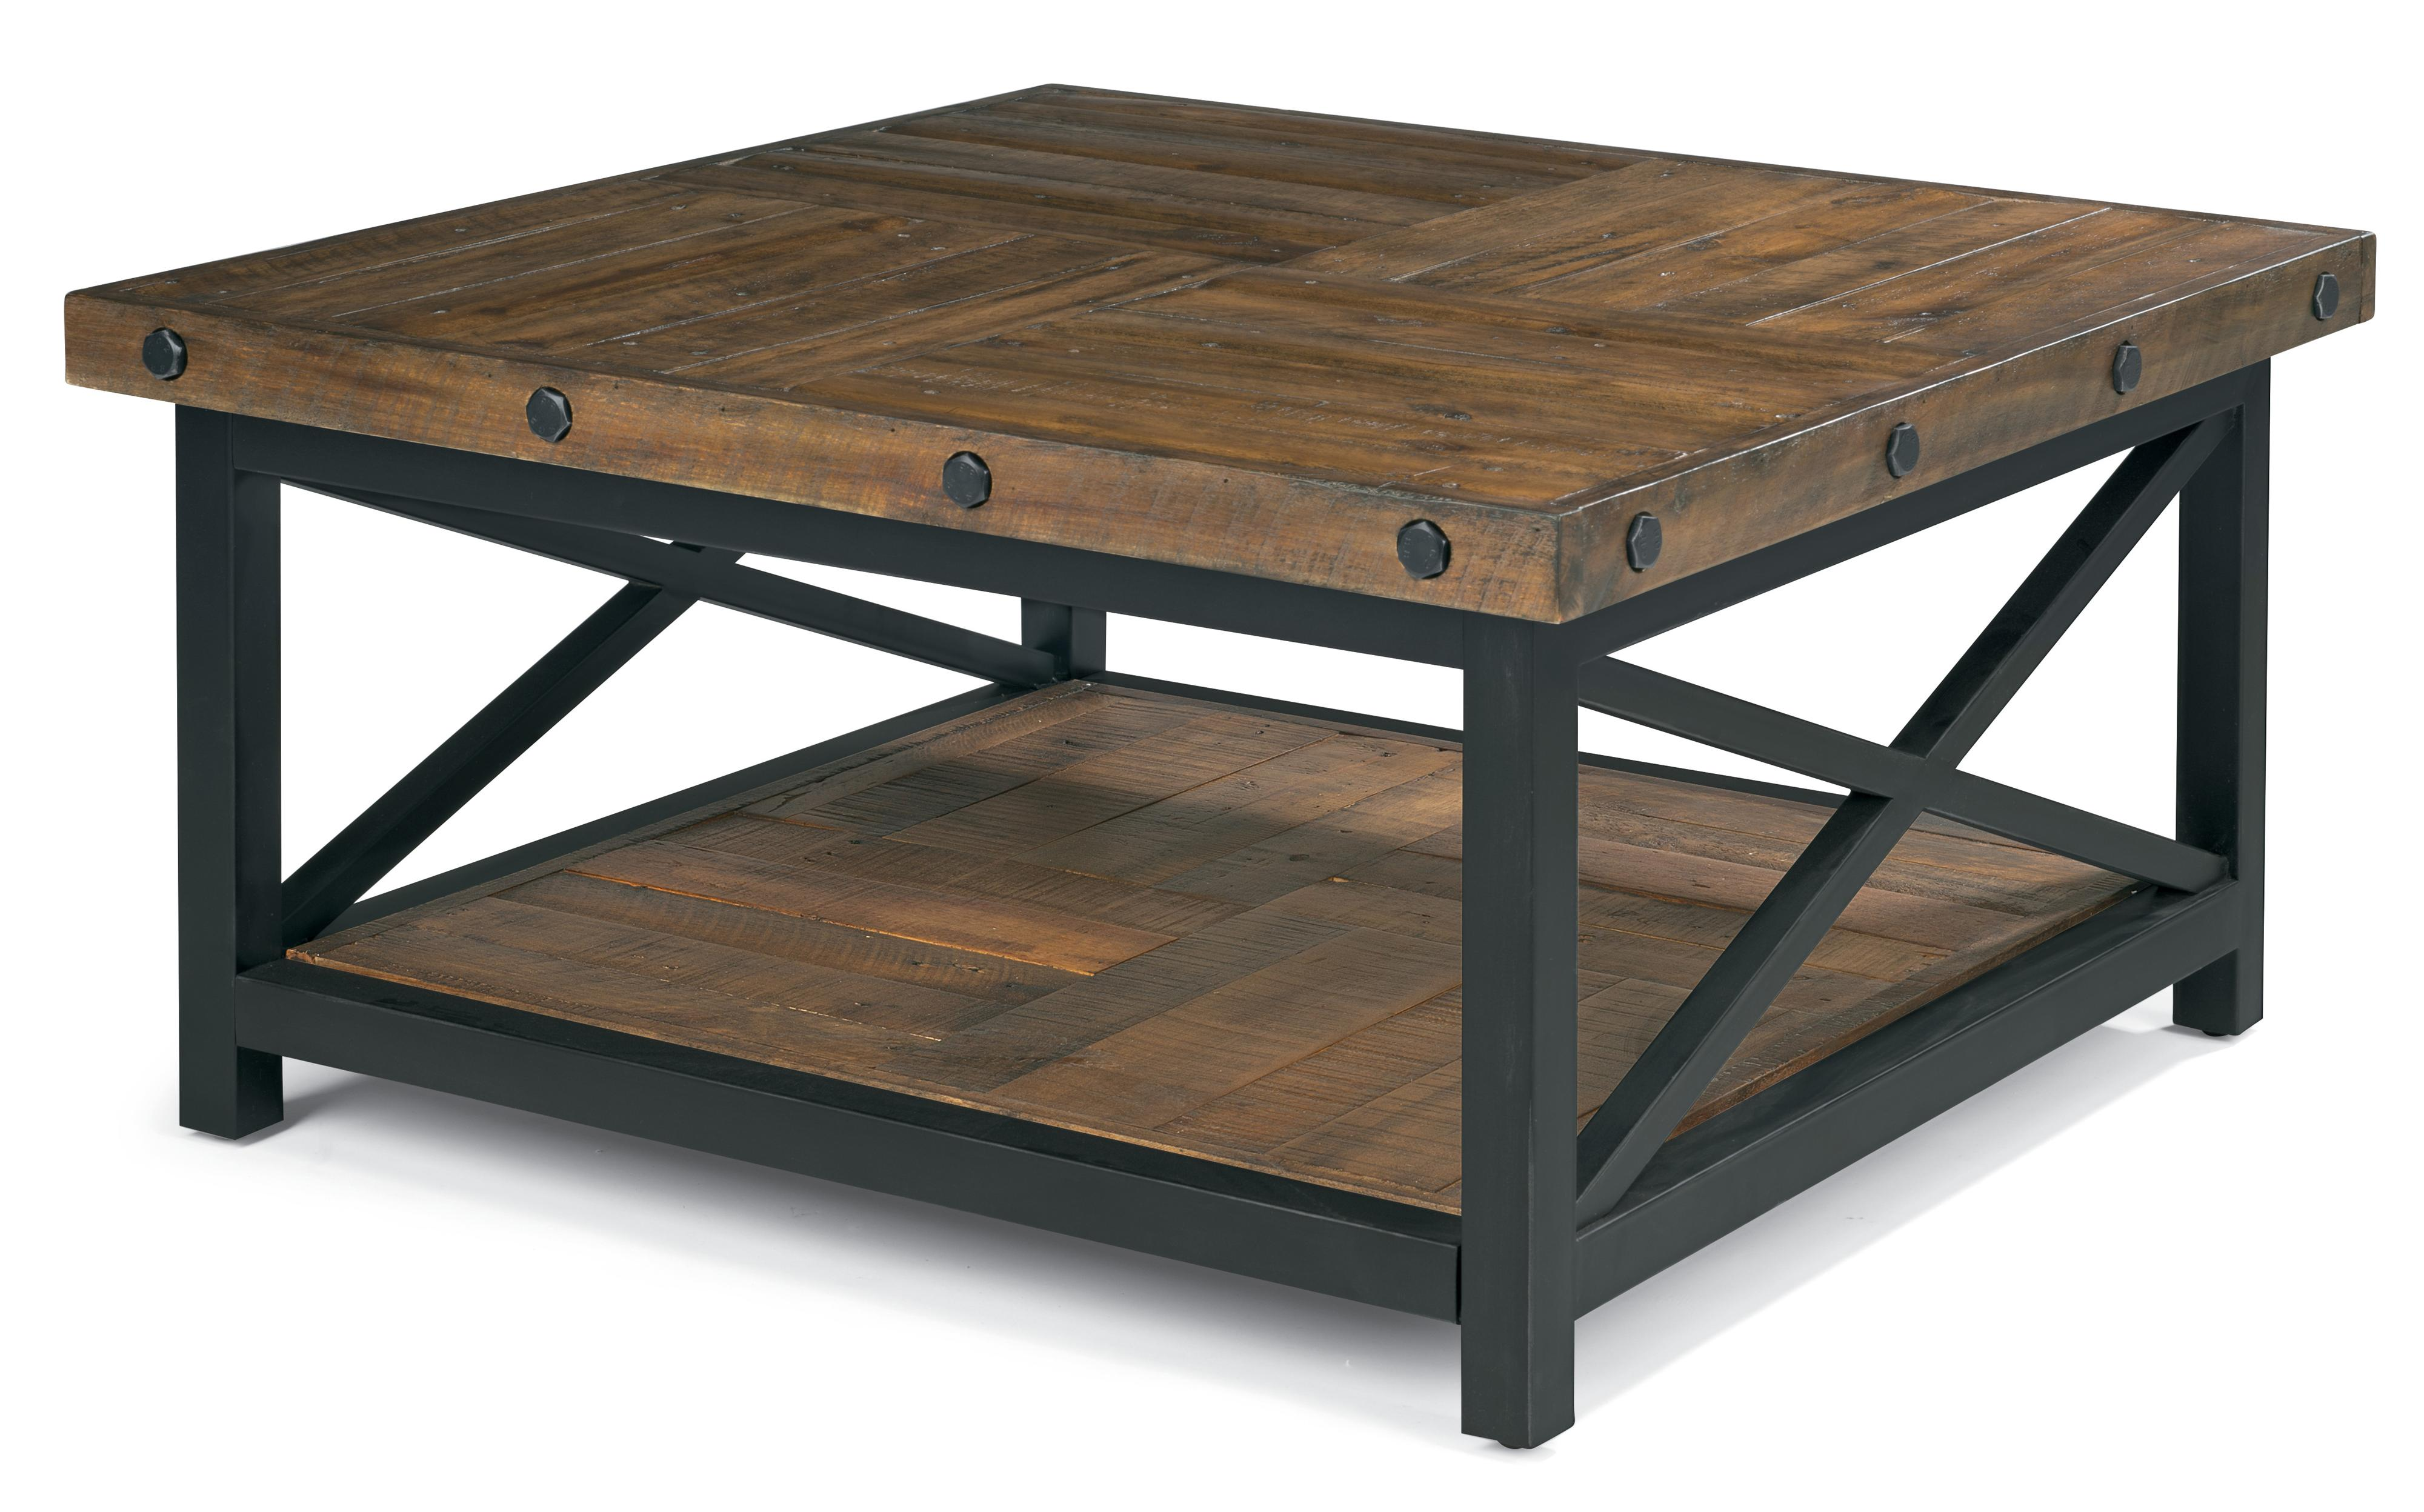 Flexsteel Carpenter Square Cocktail Table With Metal Base And Wood Plank Top Steger 39 S